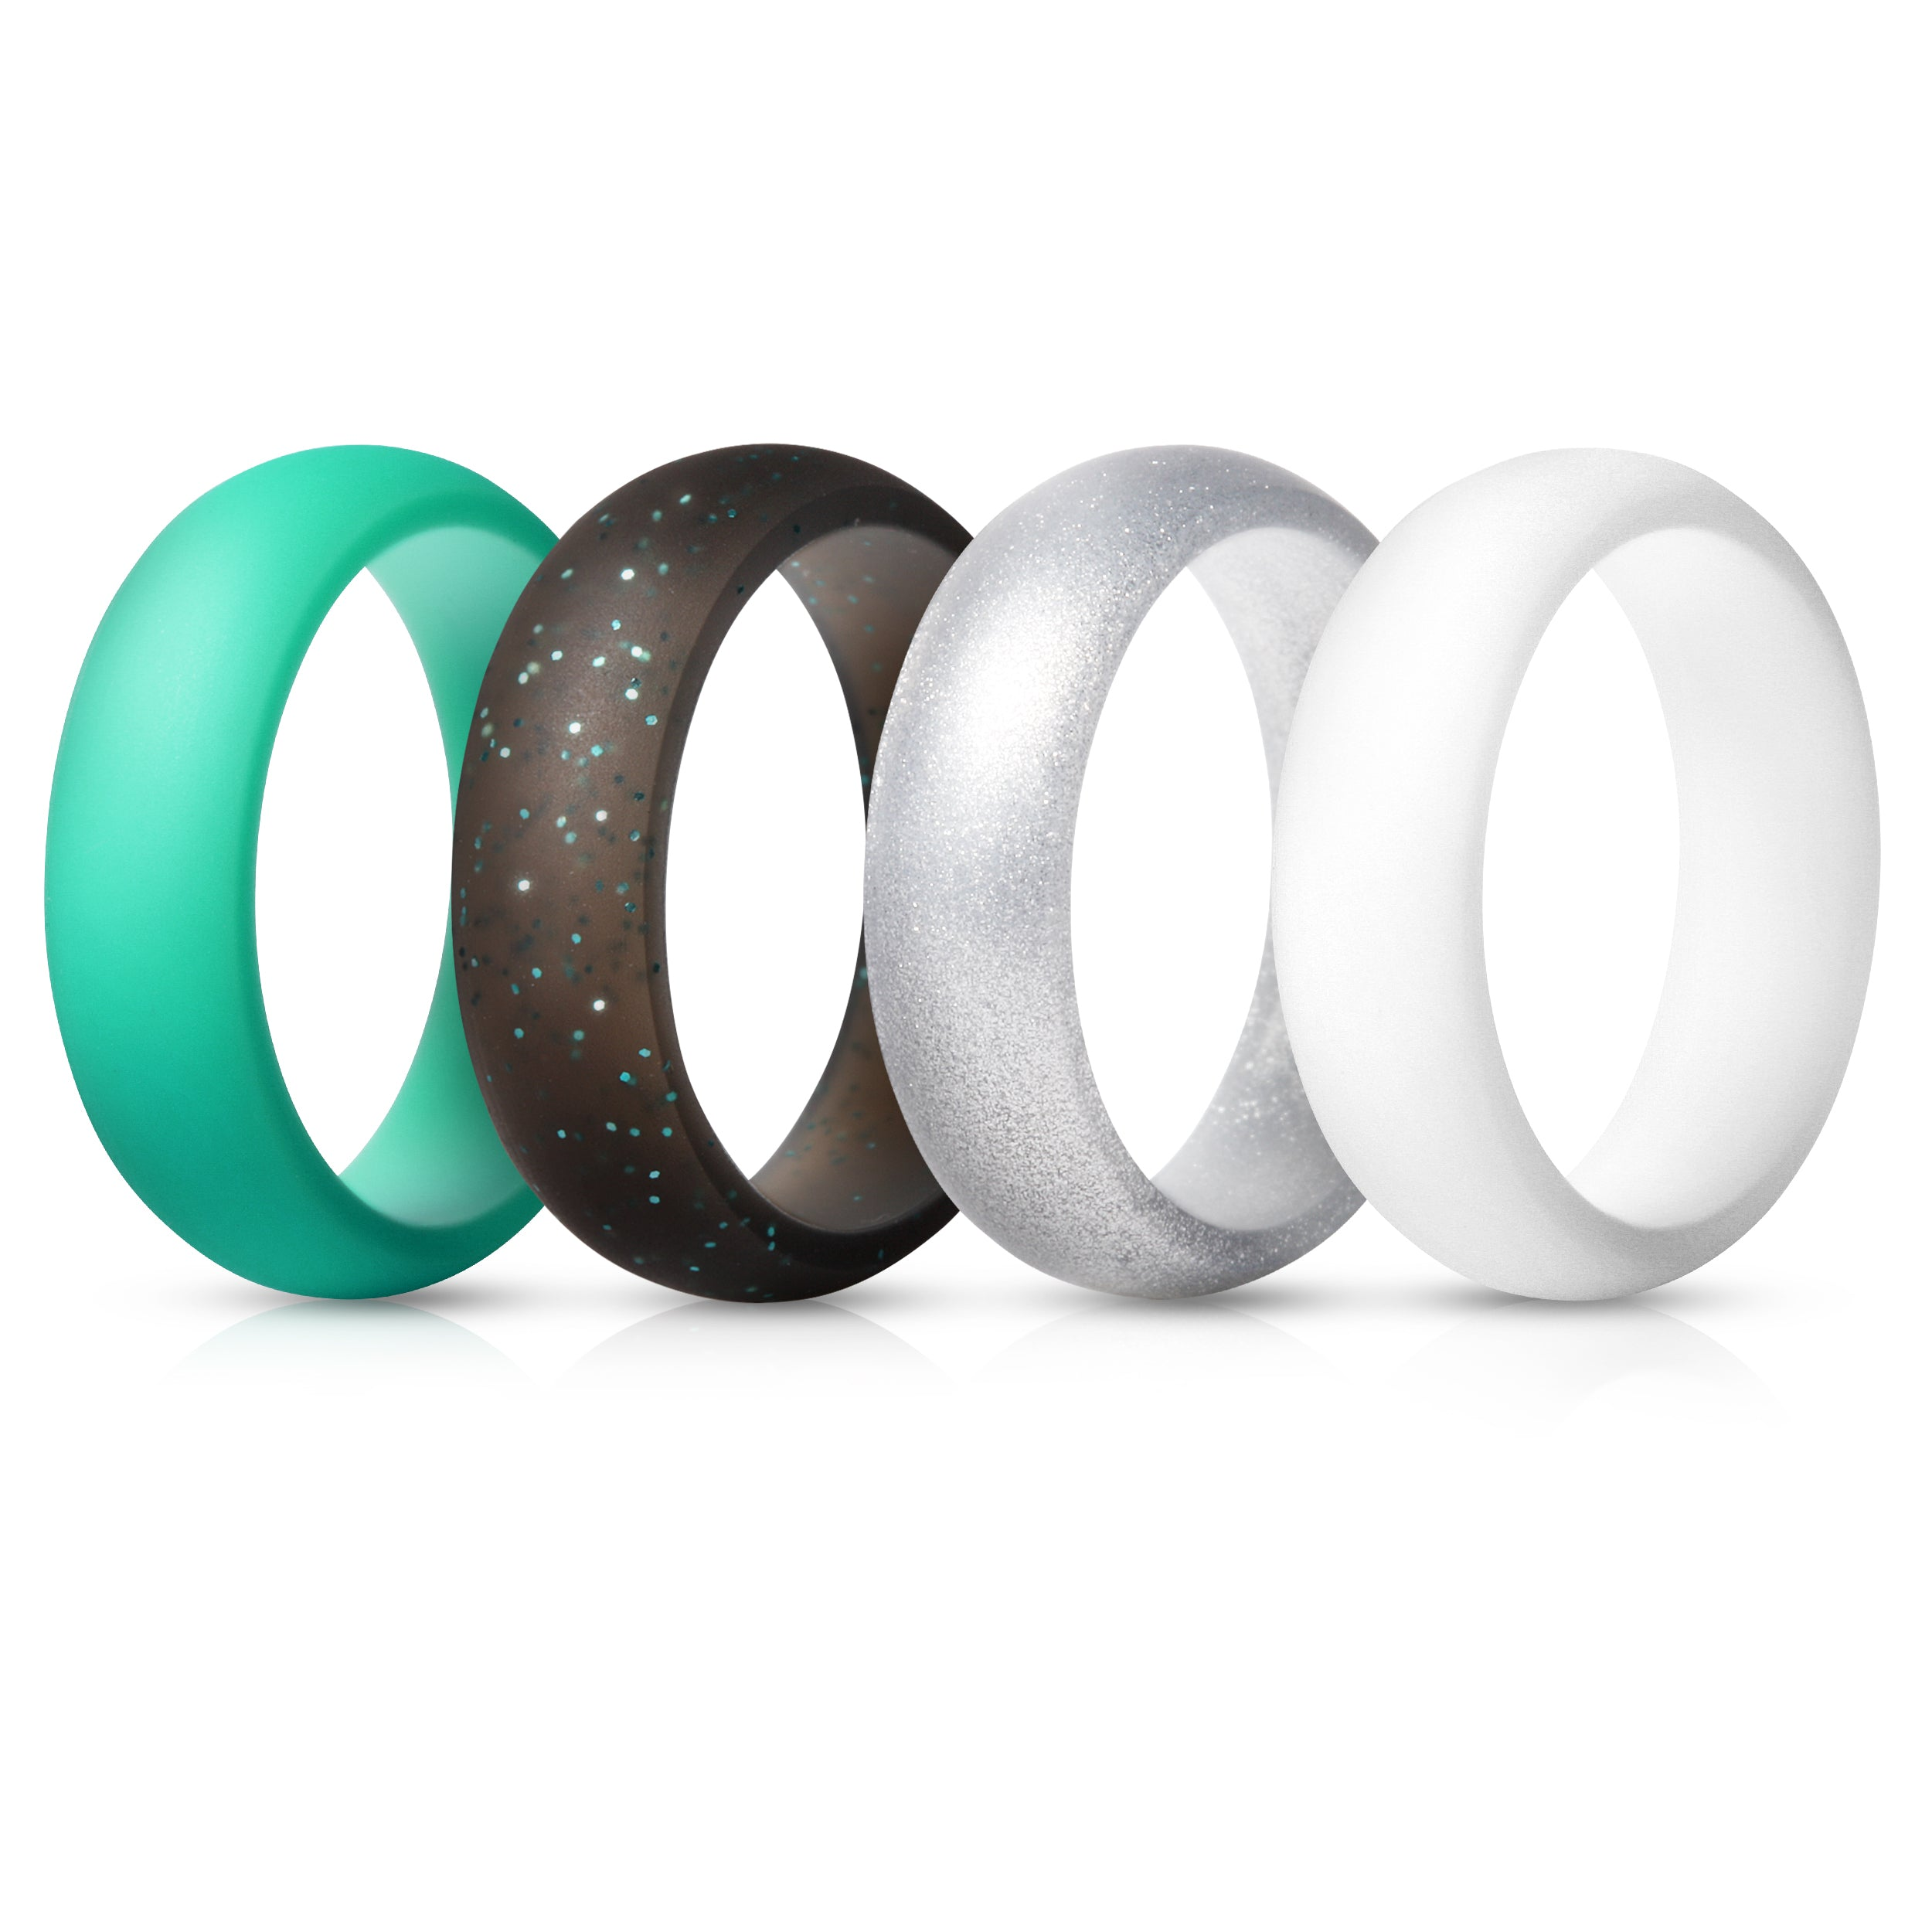 Women's Rings 4 Pack - Silver, White, Teal, Black with Teal Glitter